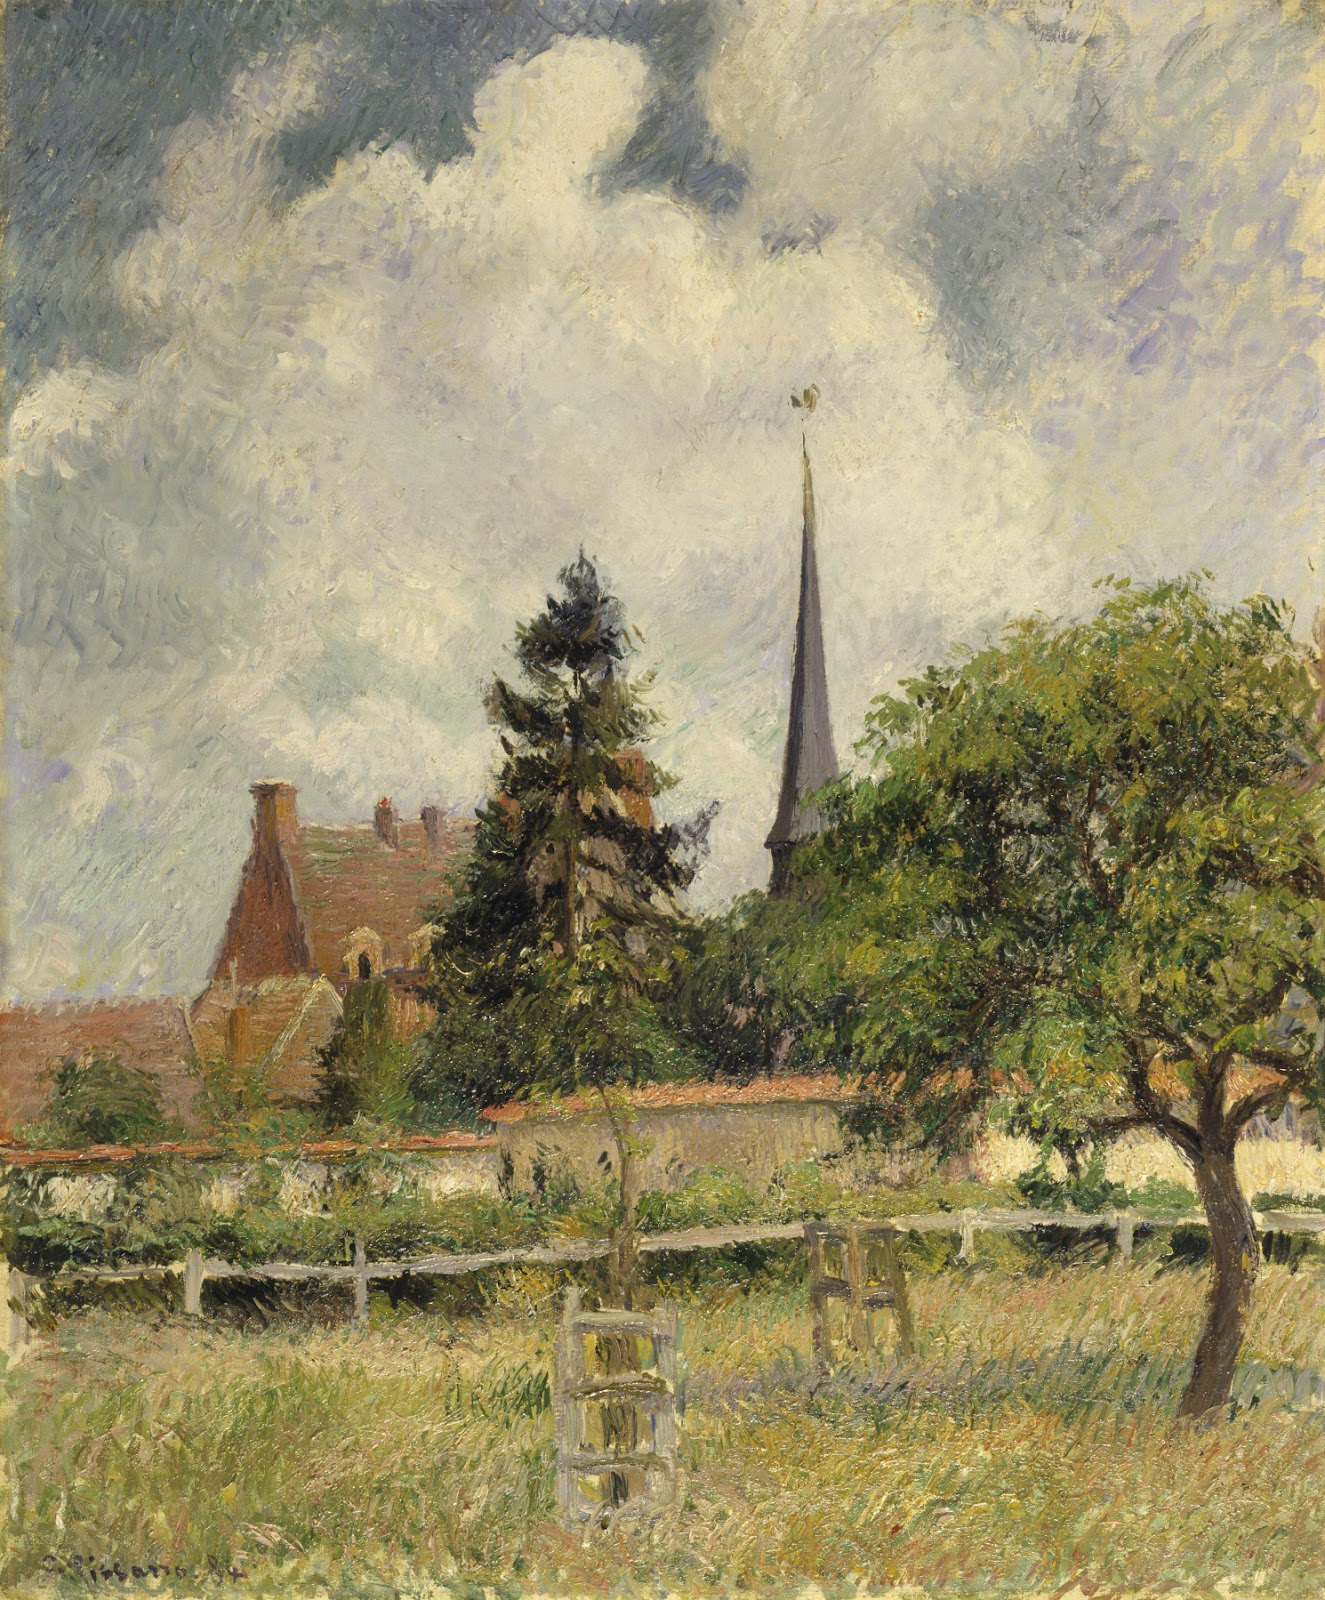 Camille Pissarro: My French Easel: If Artists Were Trees